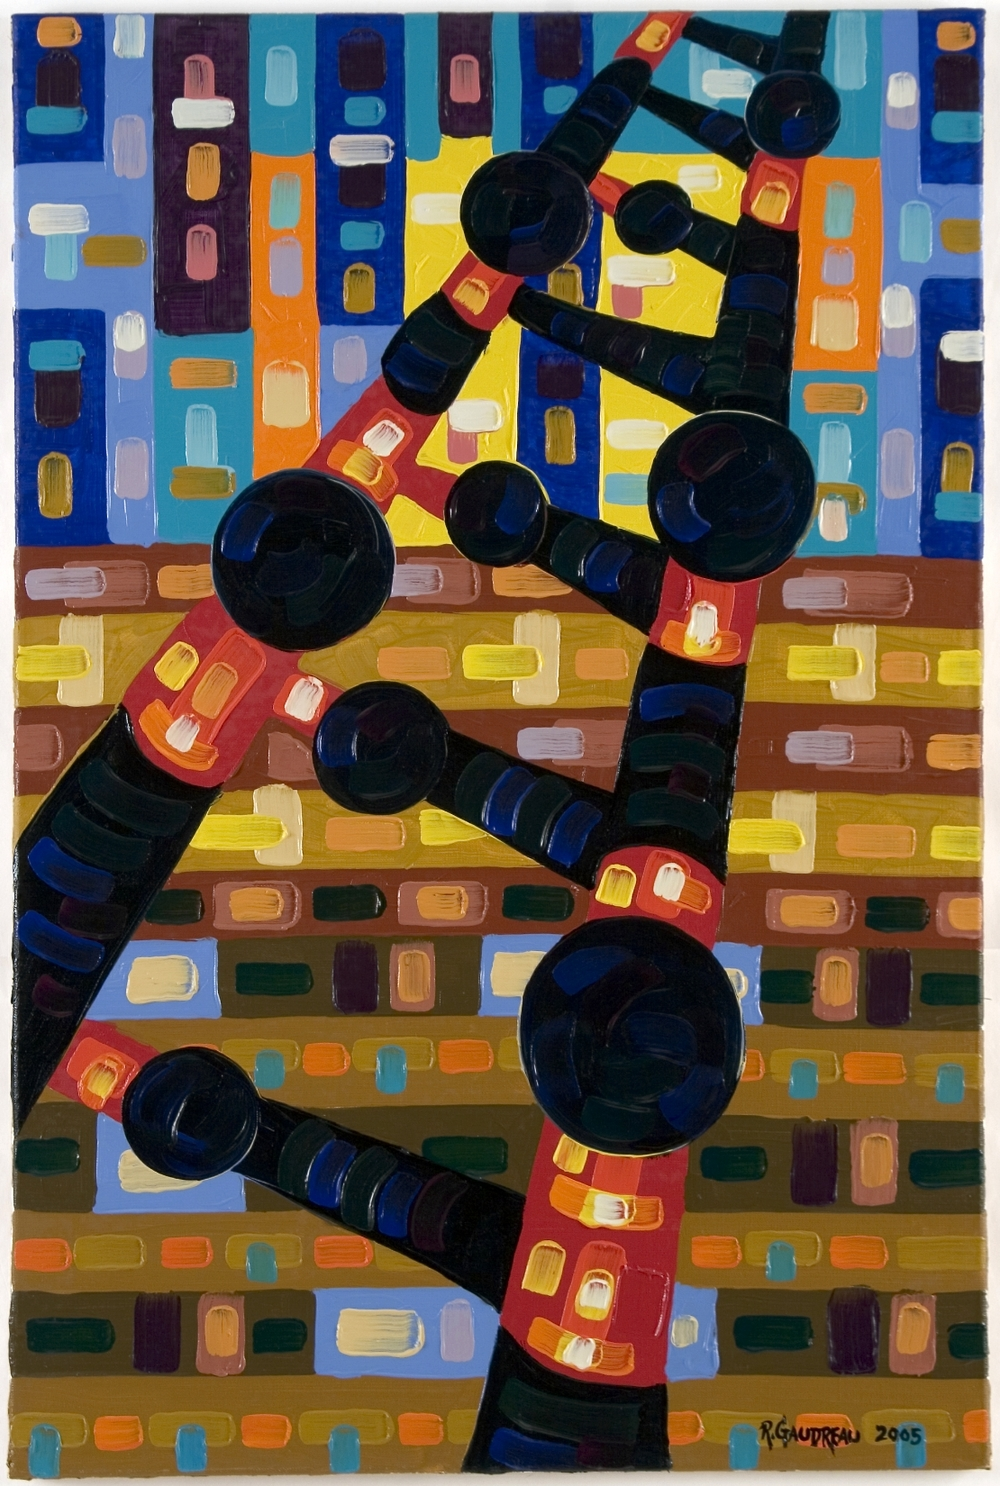 Ladder     2005 oil on linen 36 x 24 inches